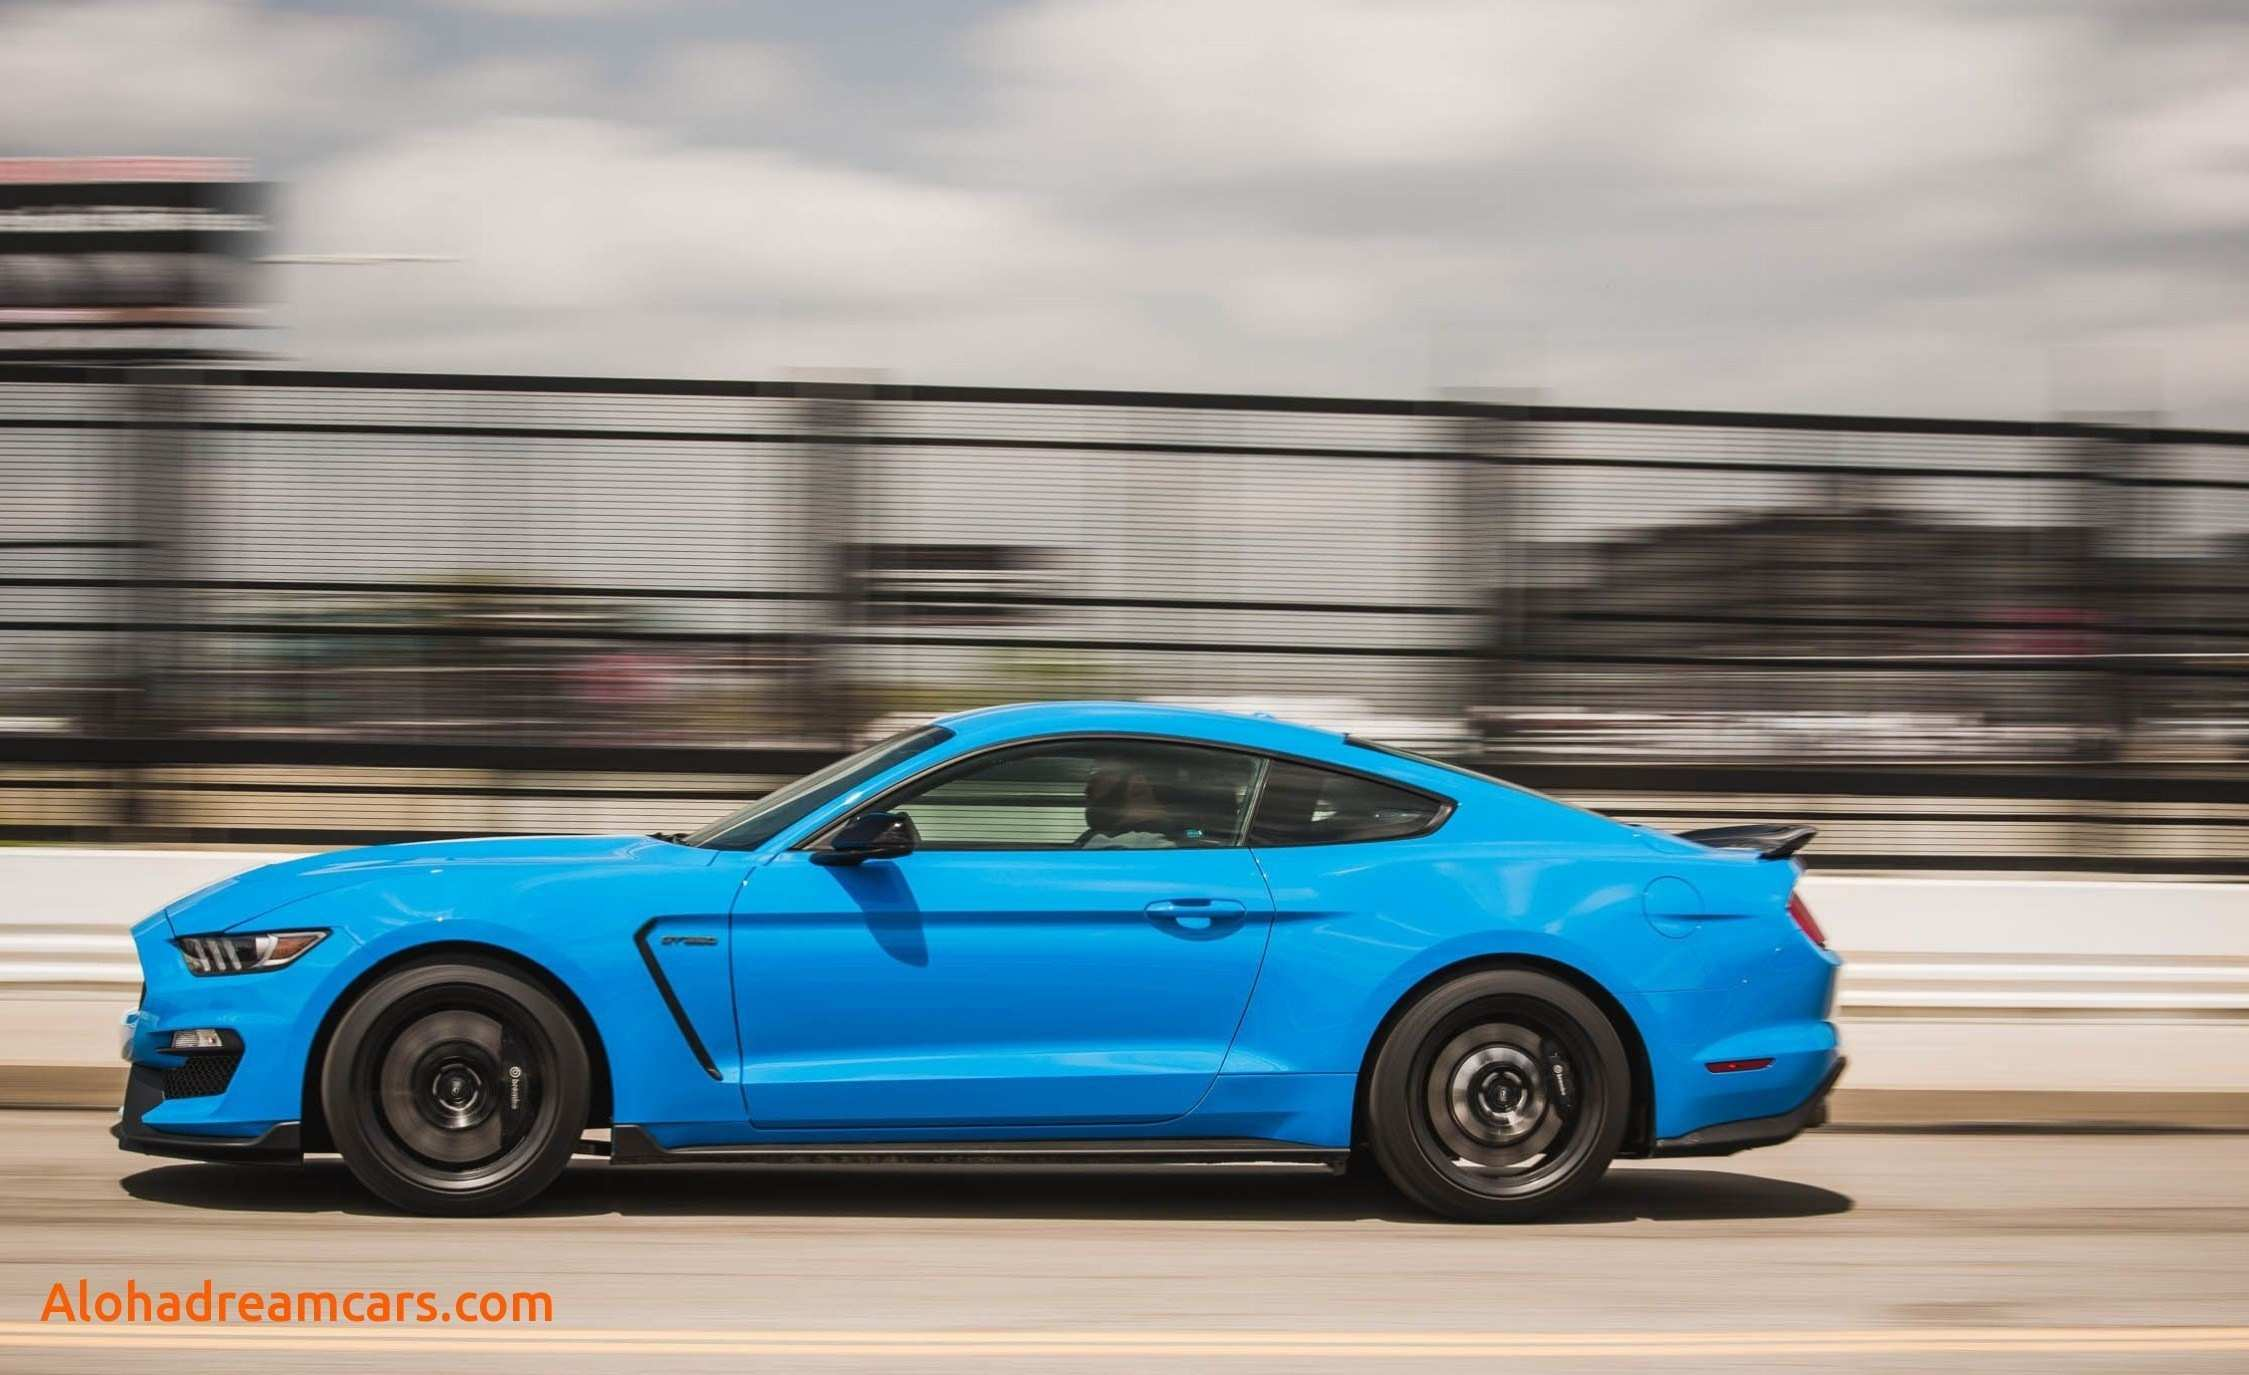 45 New 2019 The Spy Shots Ford Mustang Svt Gt 500 Style